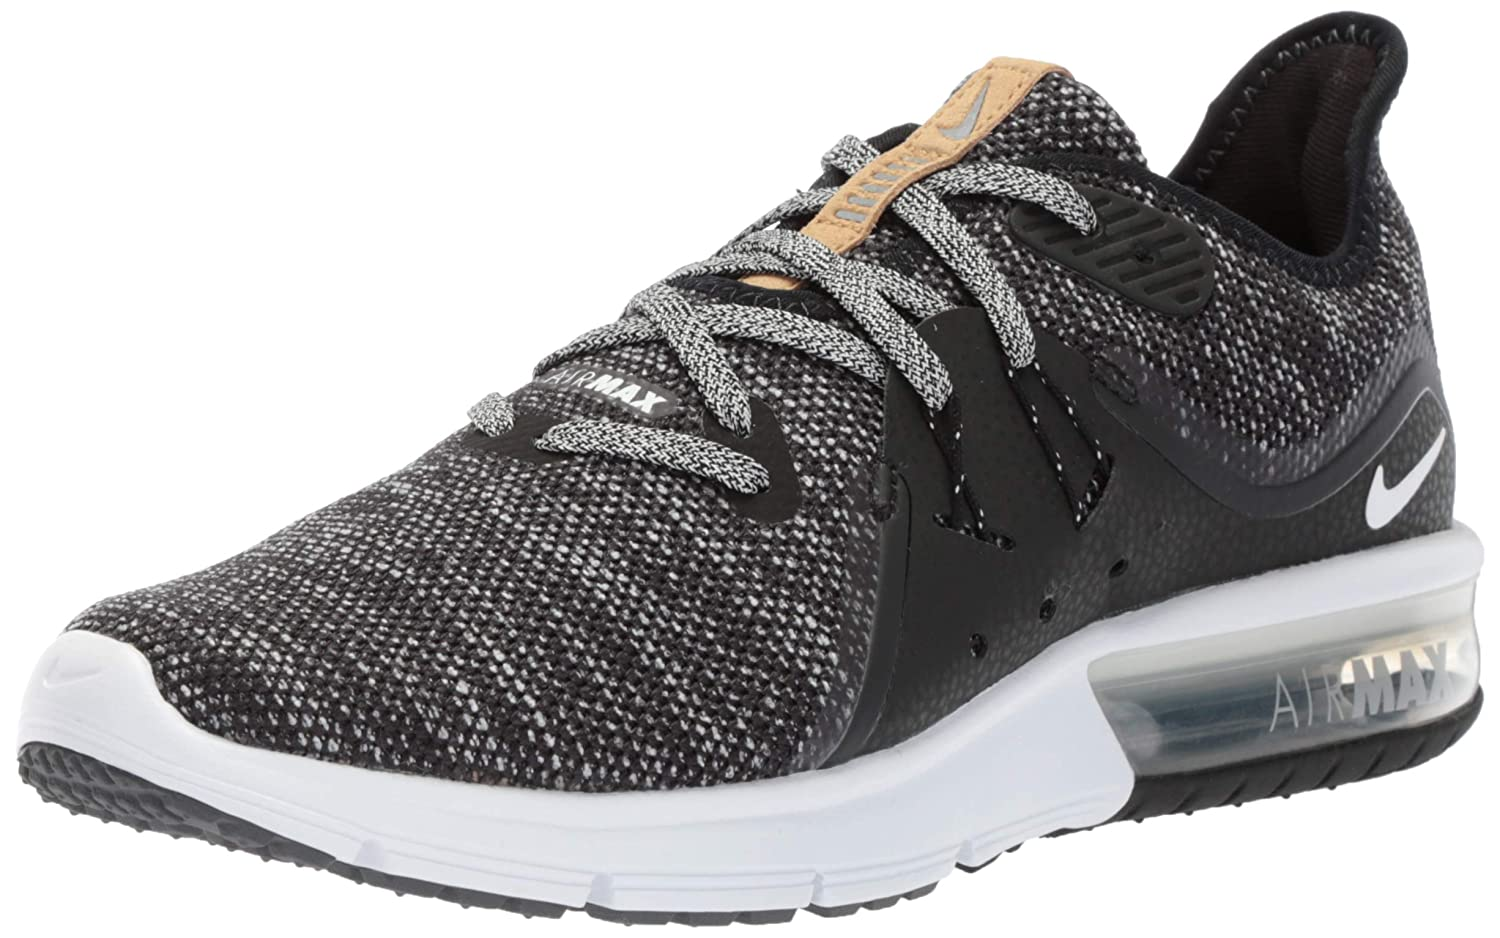 Amazon.com: Nike Womens Air Max Sequent 3 Running Shoe ...